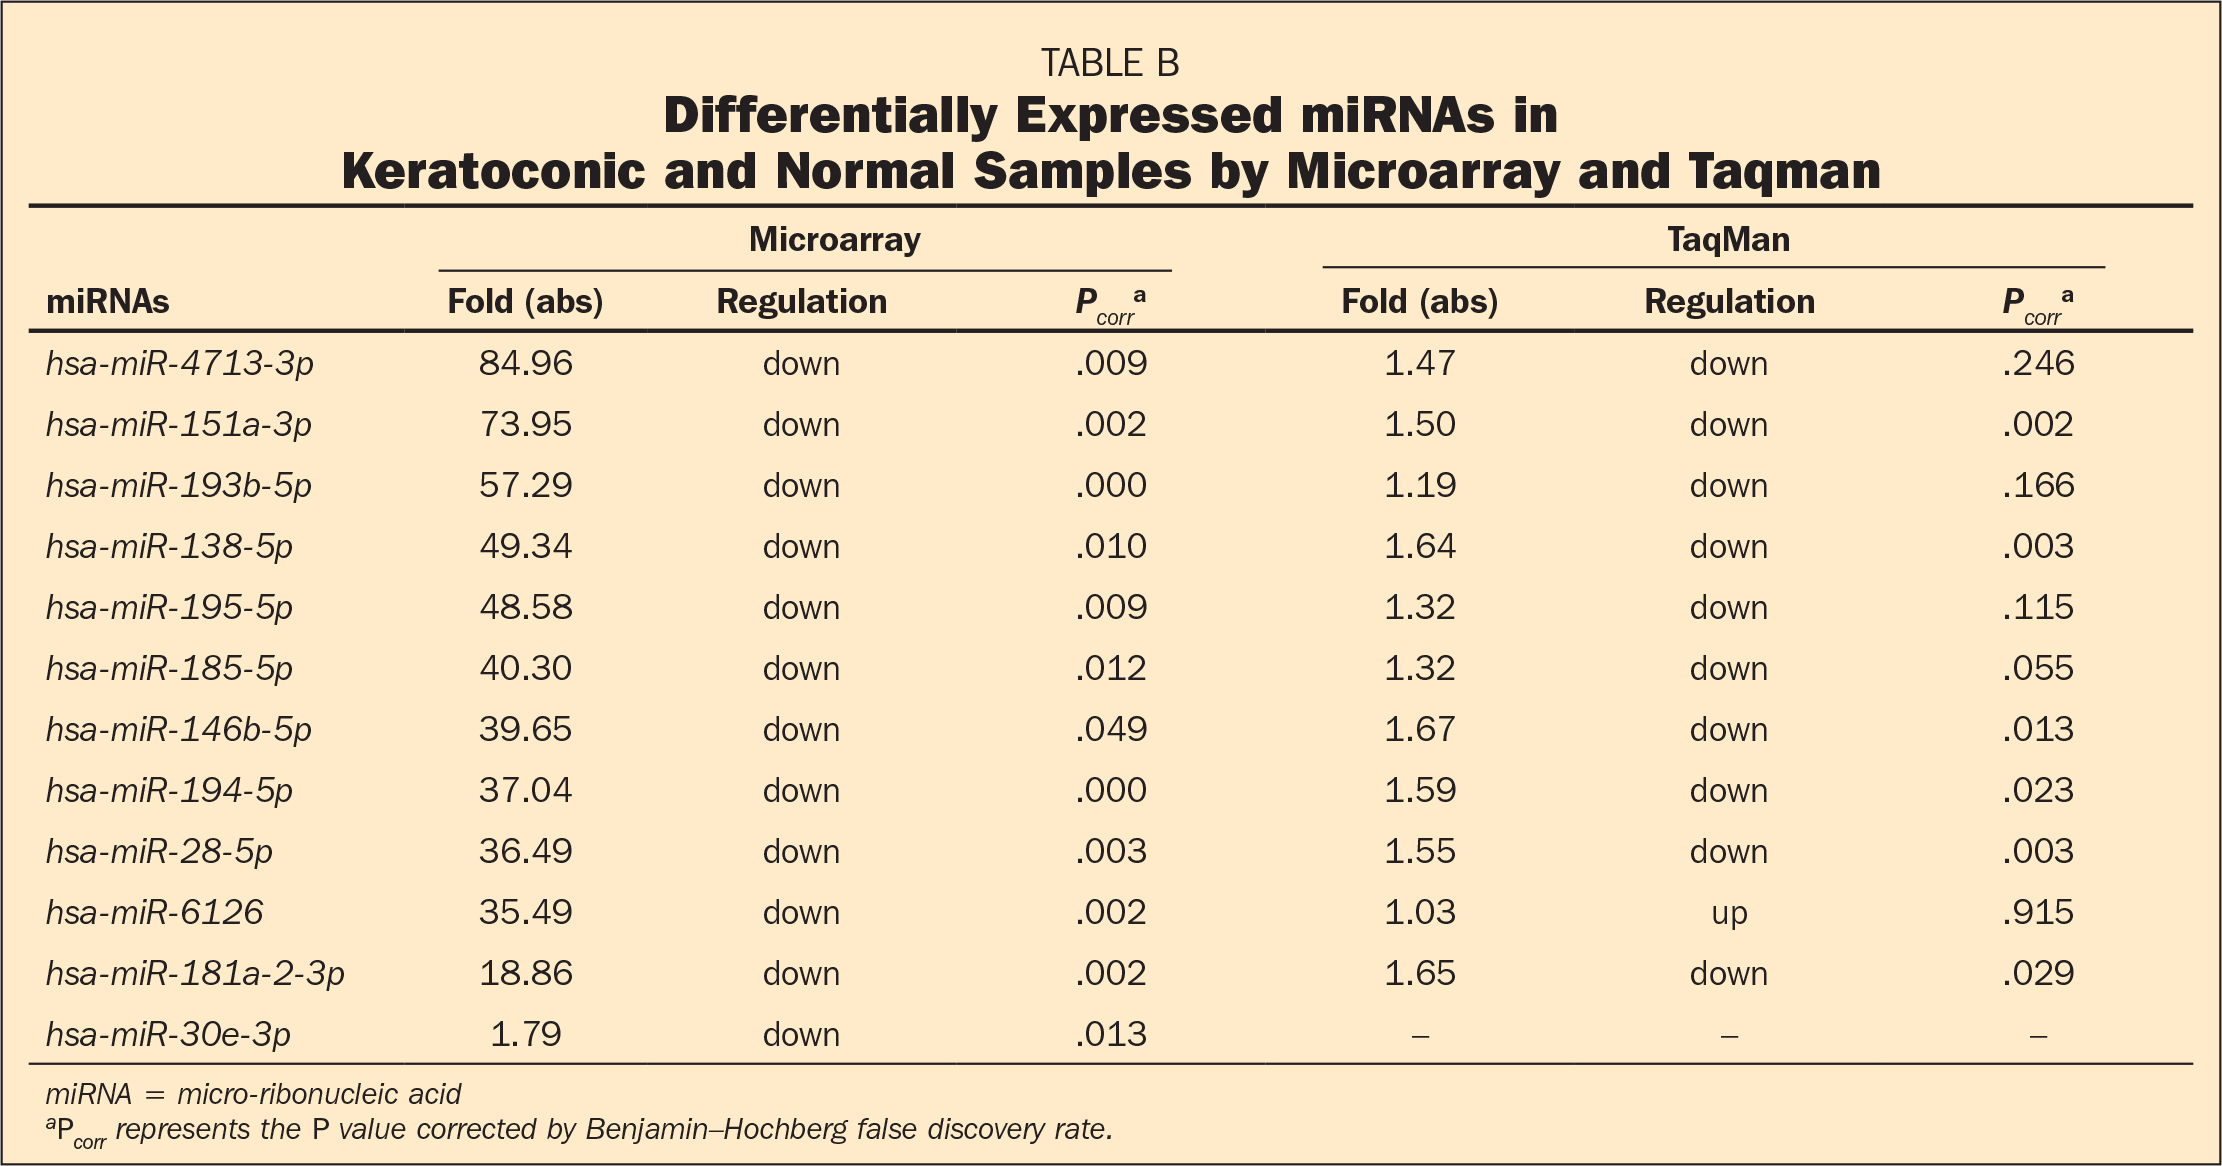 Differentially Expressed miRNAs in Keratoconic and Normal Samples by Microarray and Taqman